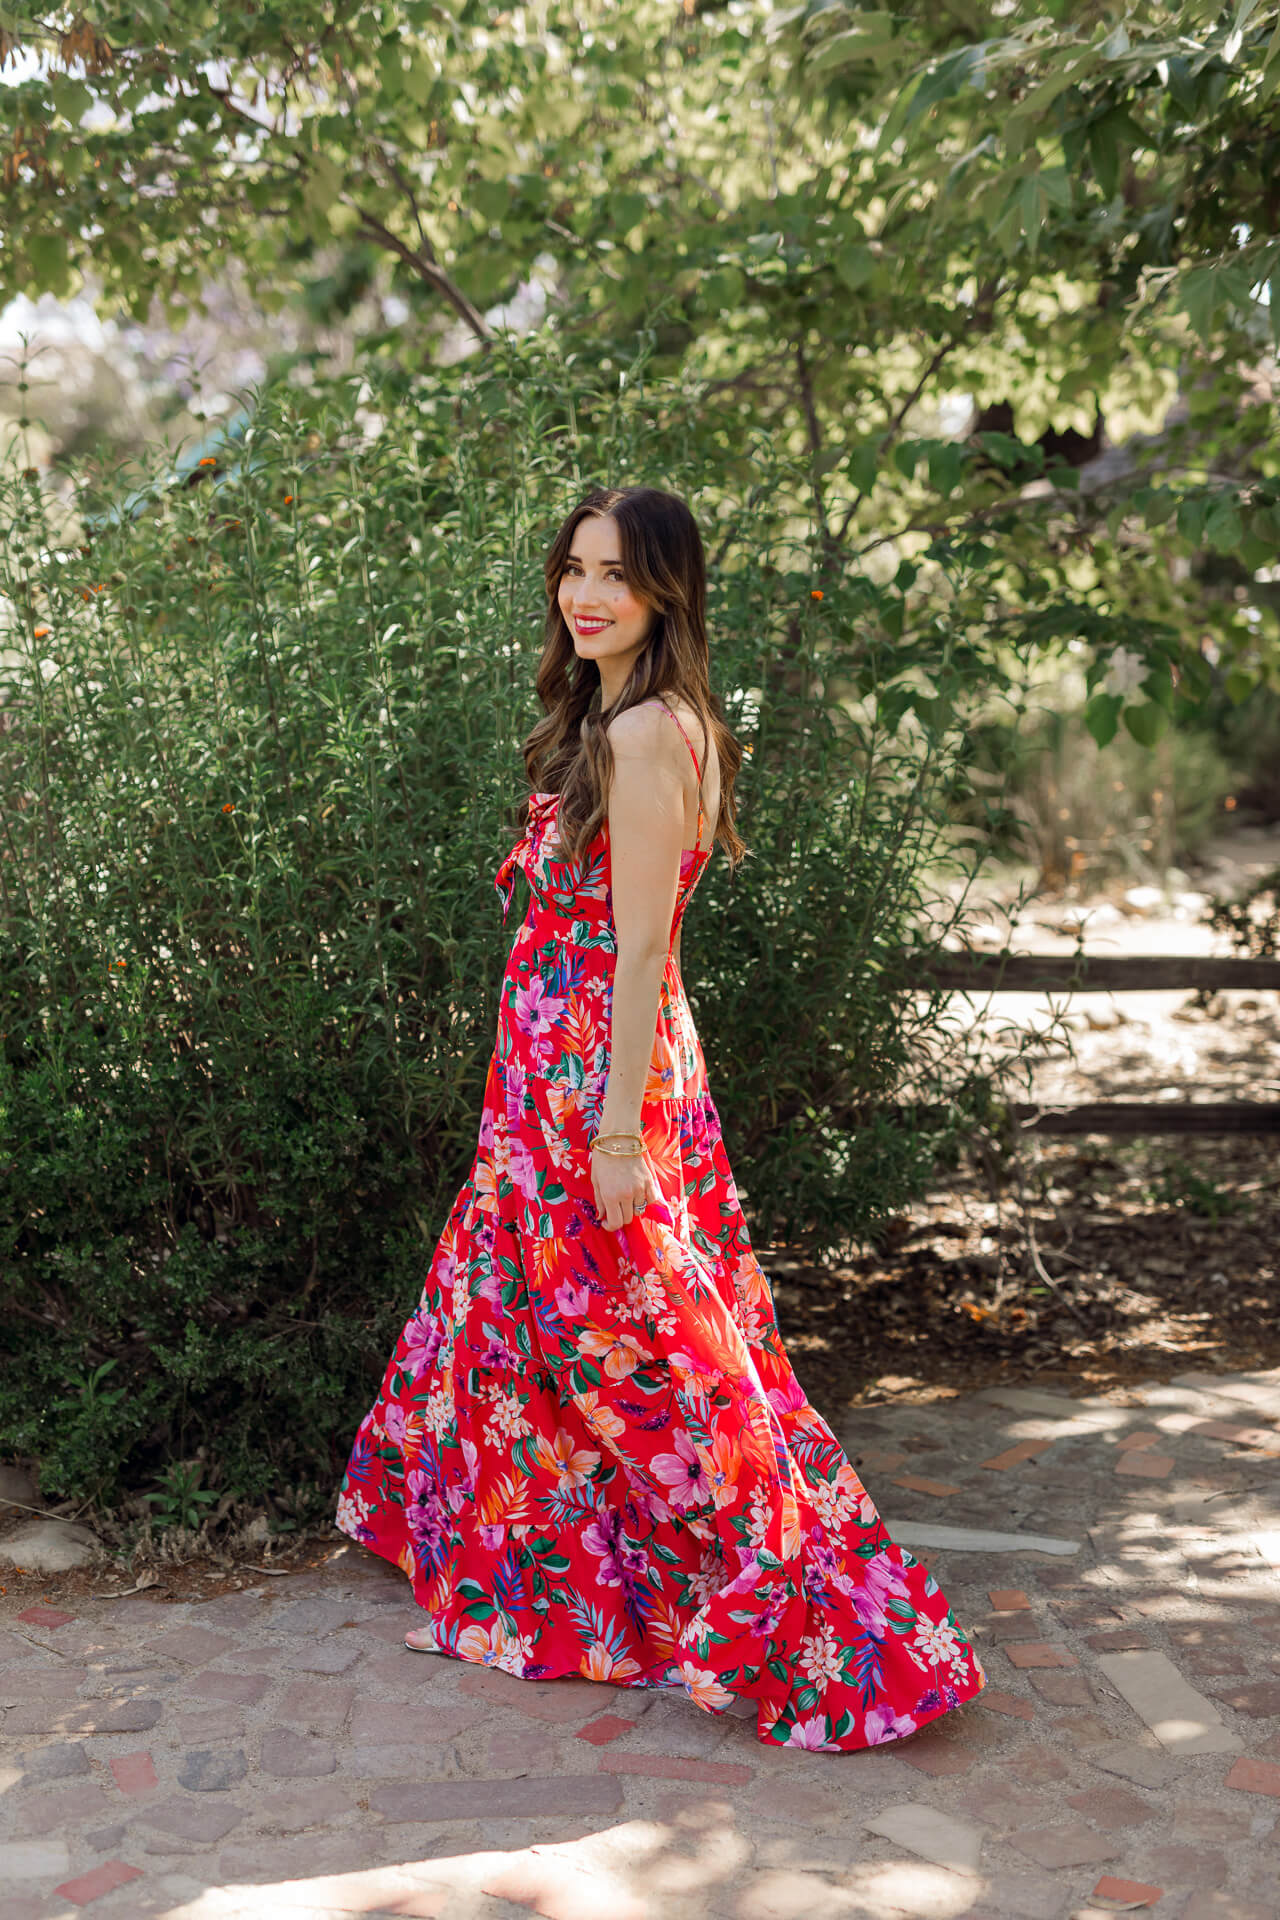 Tropical print maxi dresses for summer! - M Loves M